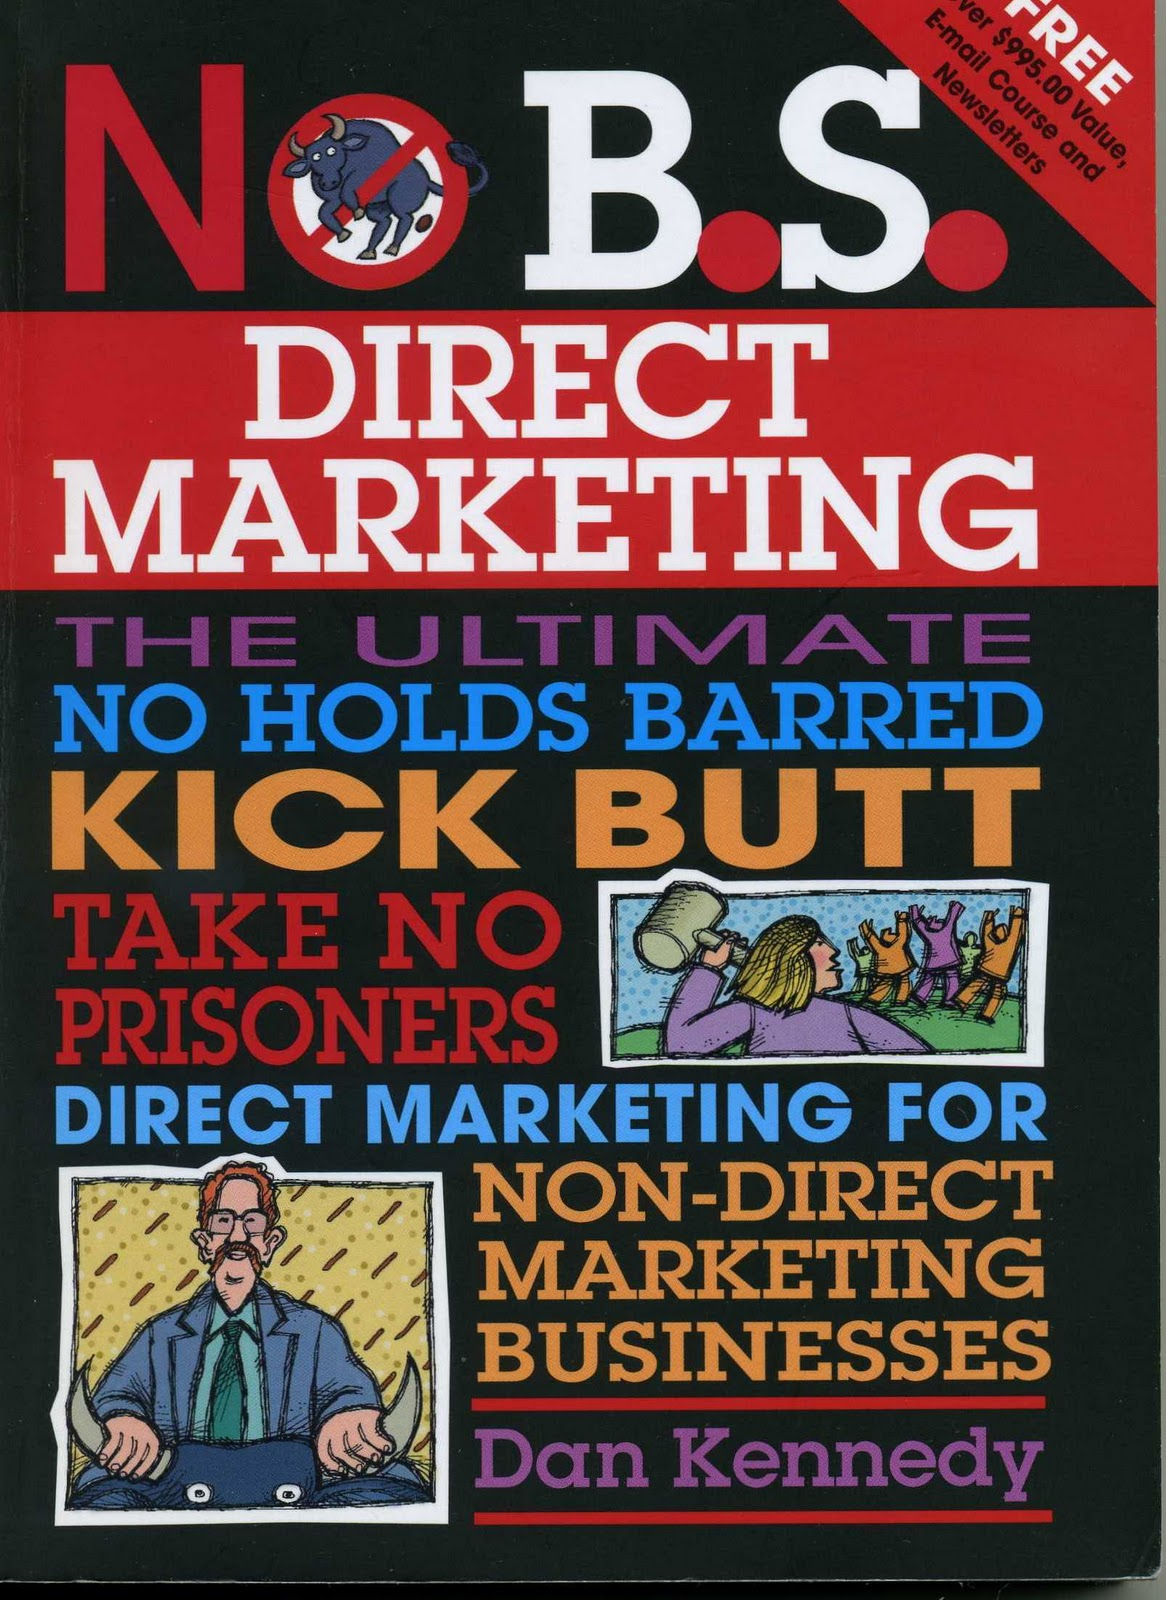 related literature for direct selling Thesis raw data for direct selling business - download as word doc (doc / docx), pdf file (pdf), text file (txt) or read online you can get my resources for direct selling business chapted 2 - related literature and studies which are forein and local.